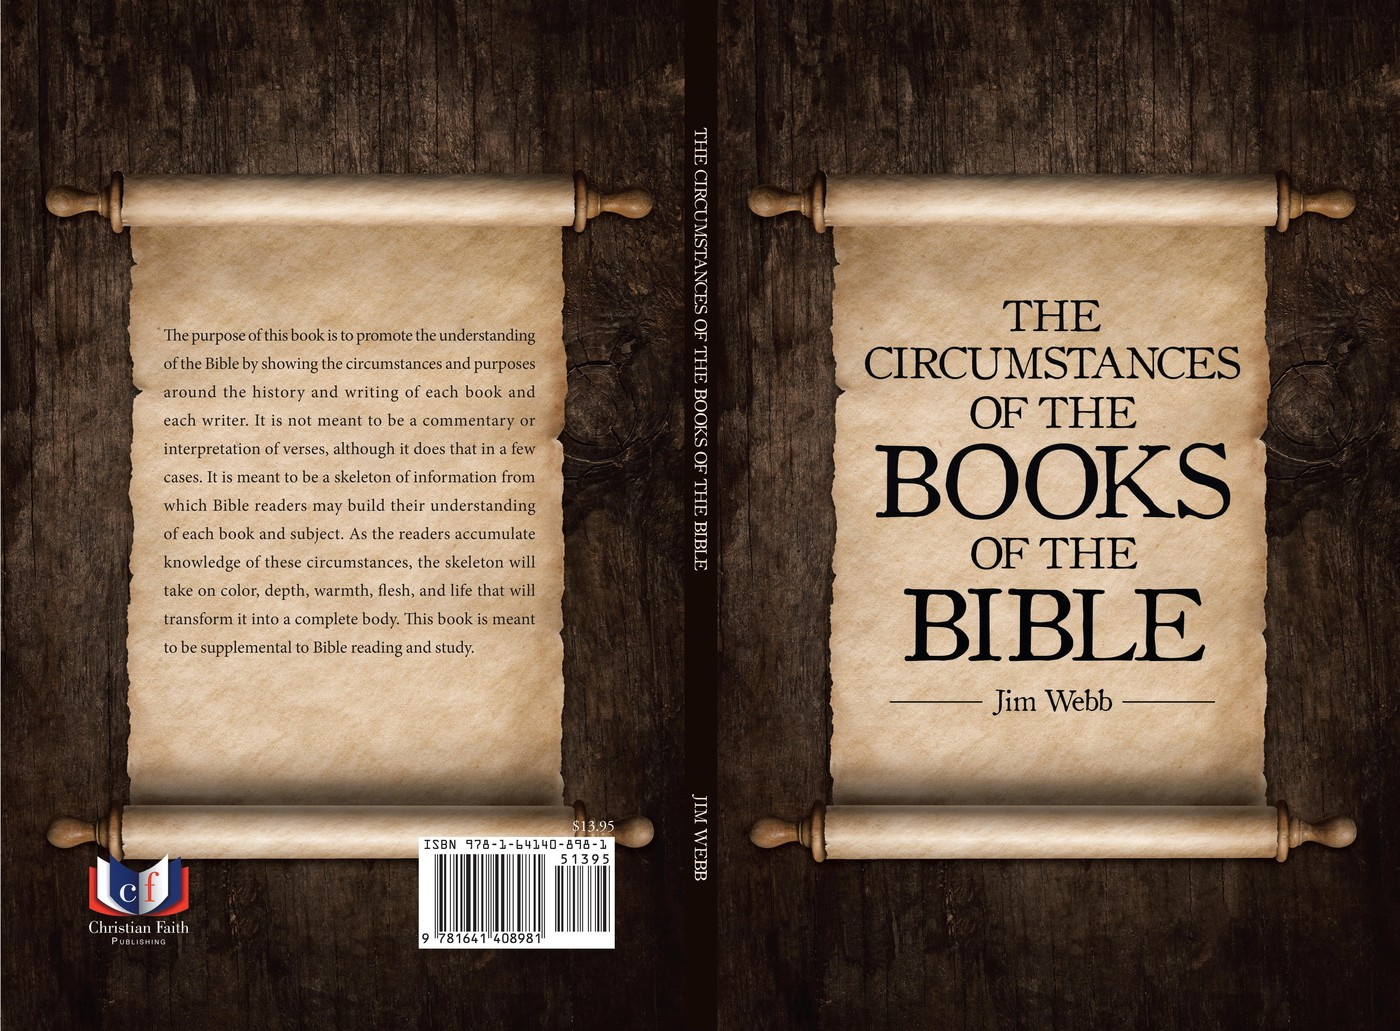 The Circumstances of the Books of the Bible